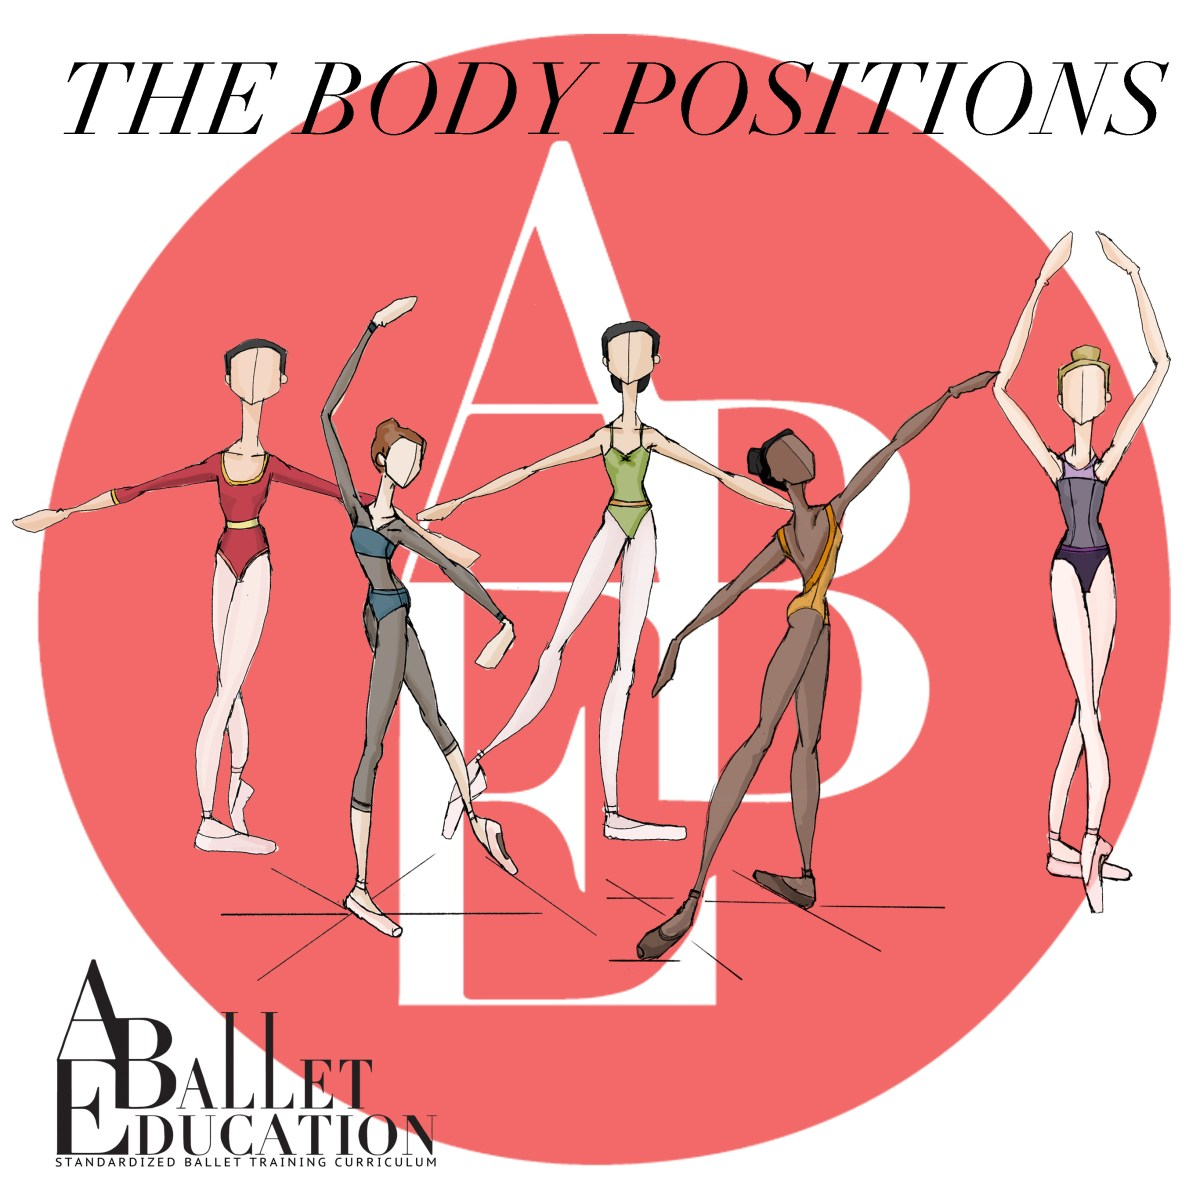 The Body Positions of Ballet